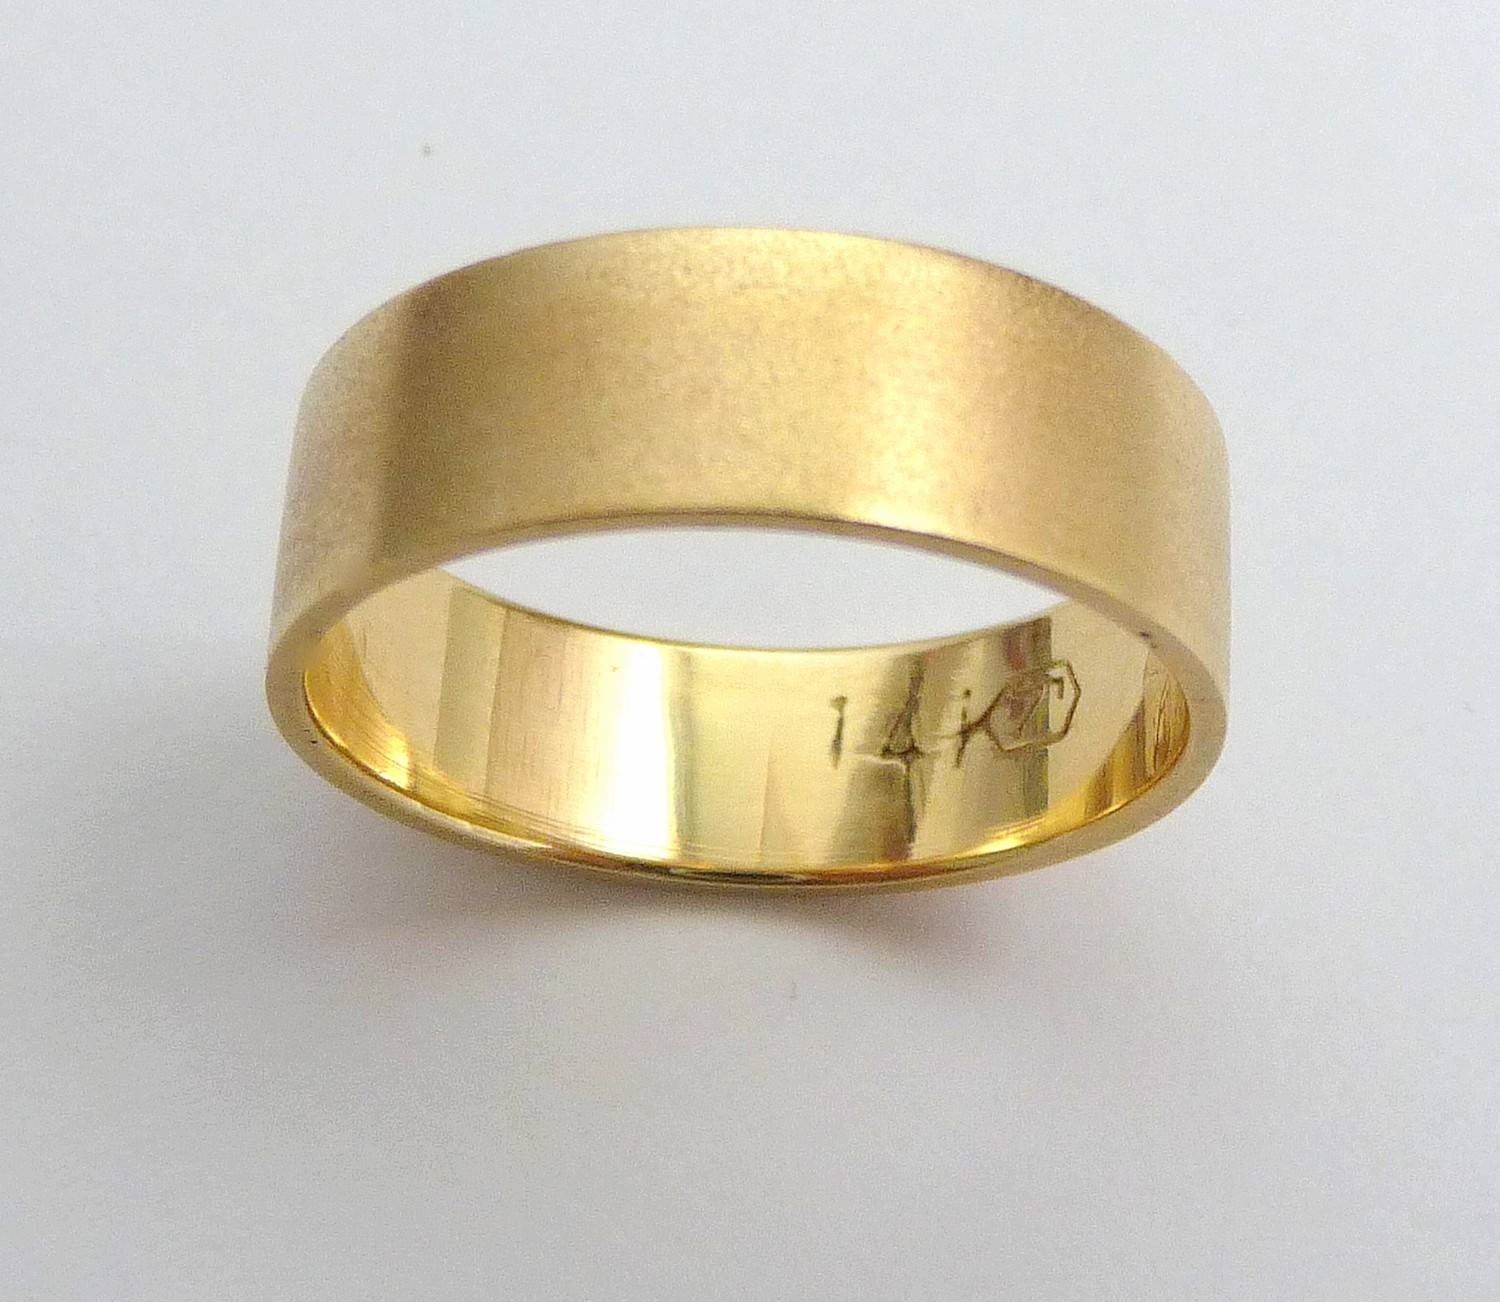 Gold Wedding Band Men Wedding Ring Flat With Sandblast Finish With Gold Male Wedding Rings (View 2 of 15)